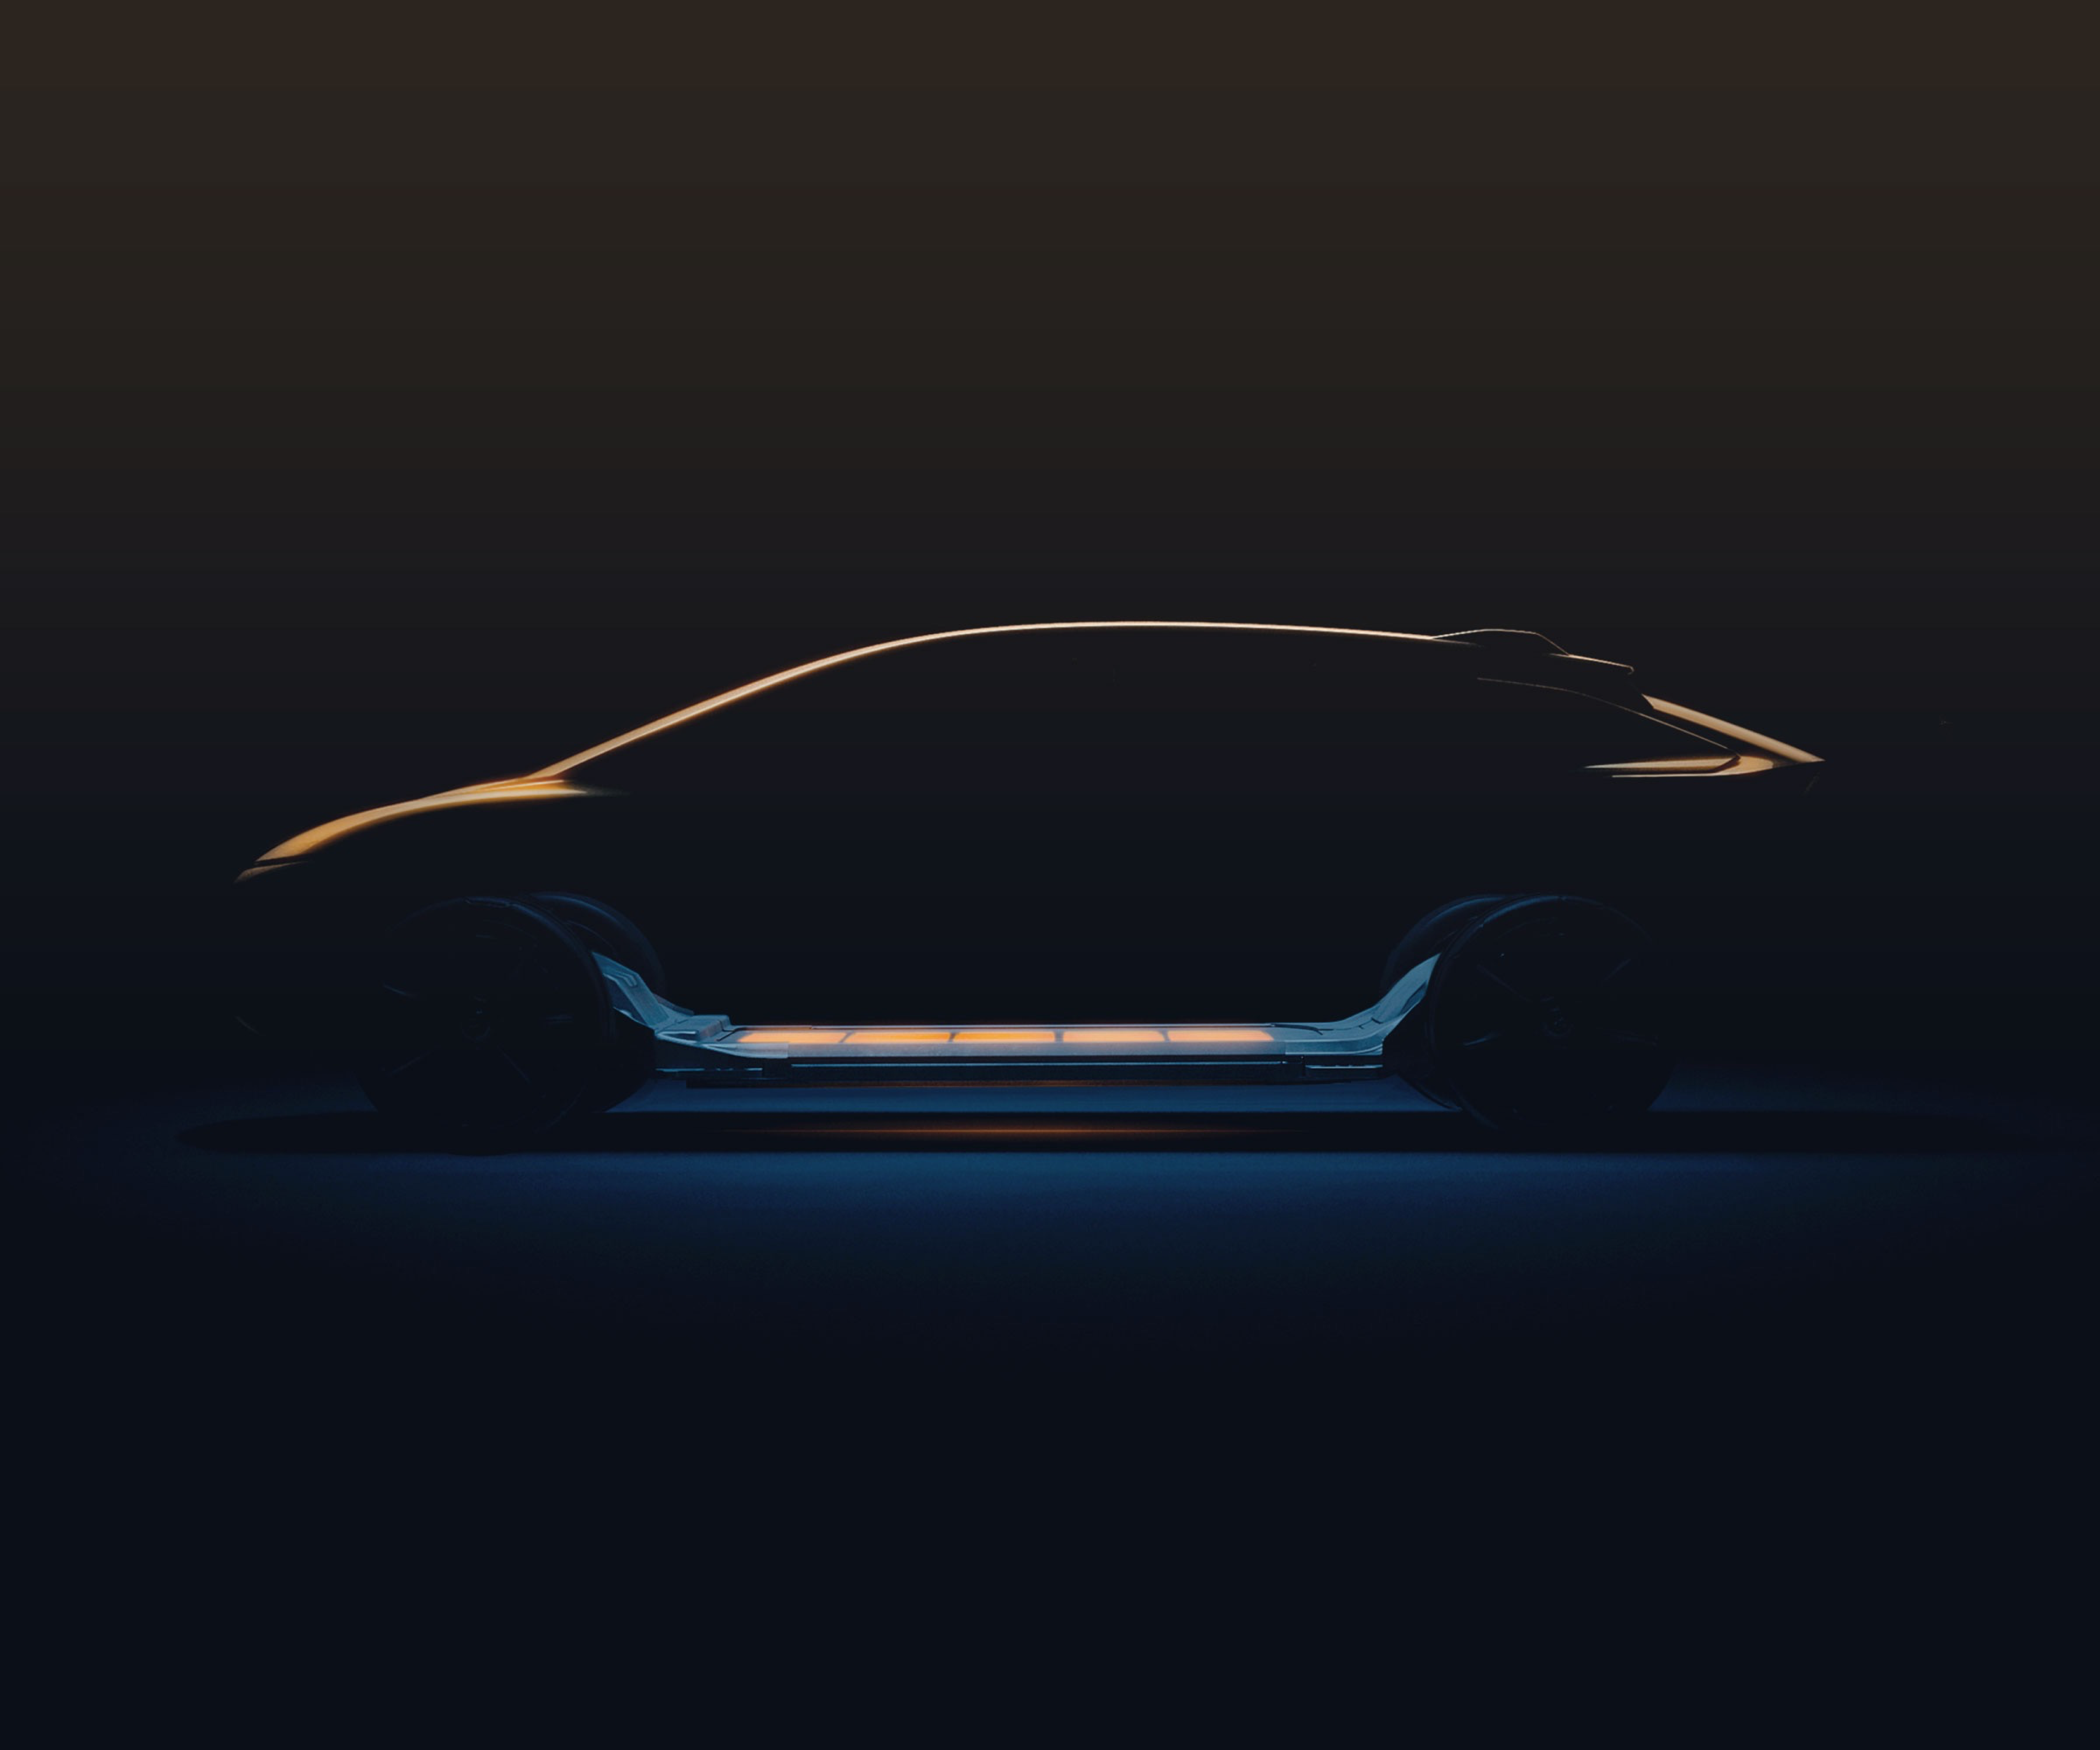 Faraday Future will unveil a production car in January at CES, the annual consumer electronics trade show in Las Vegas.